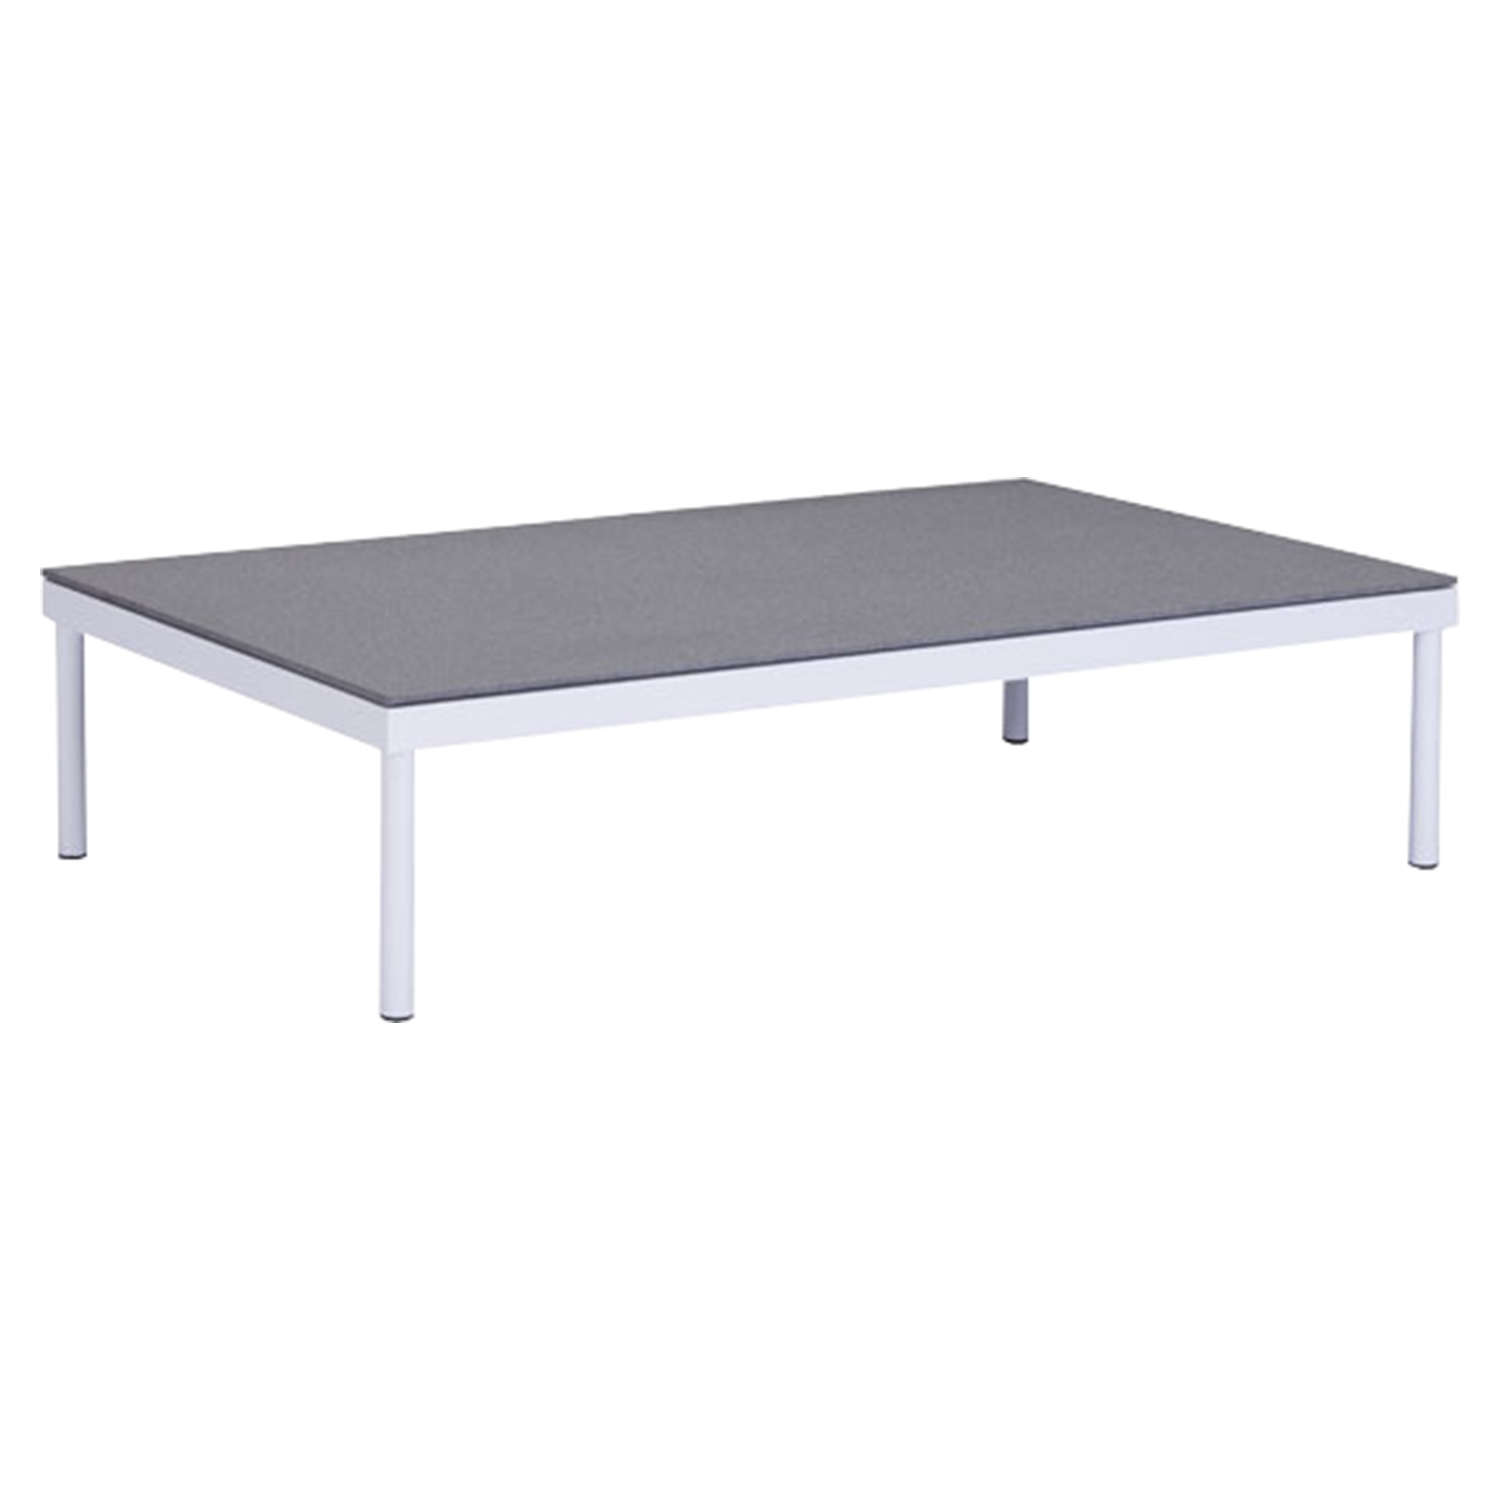 Maya Beach Coffee Table - White and Granite - ZM-703600